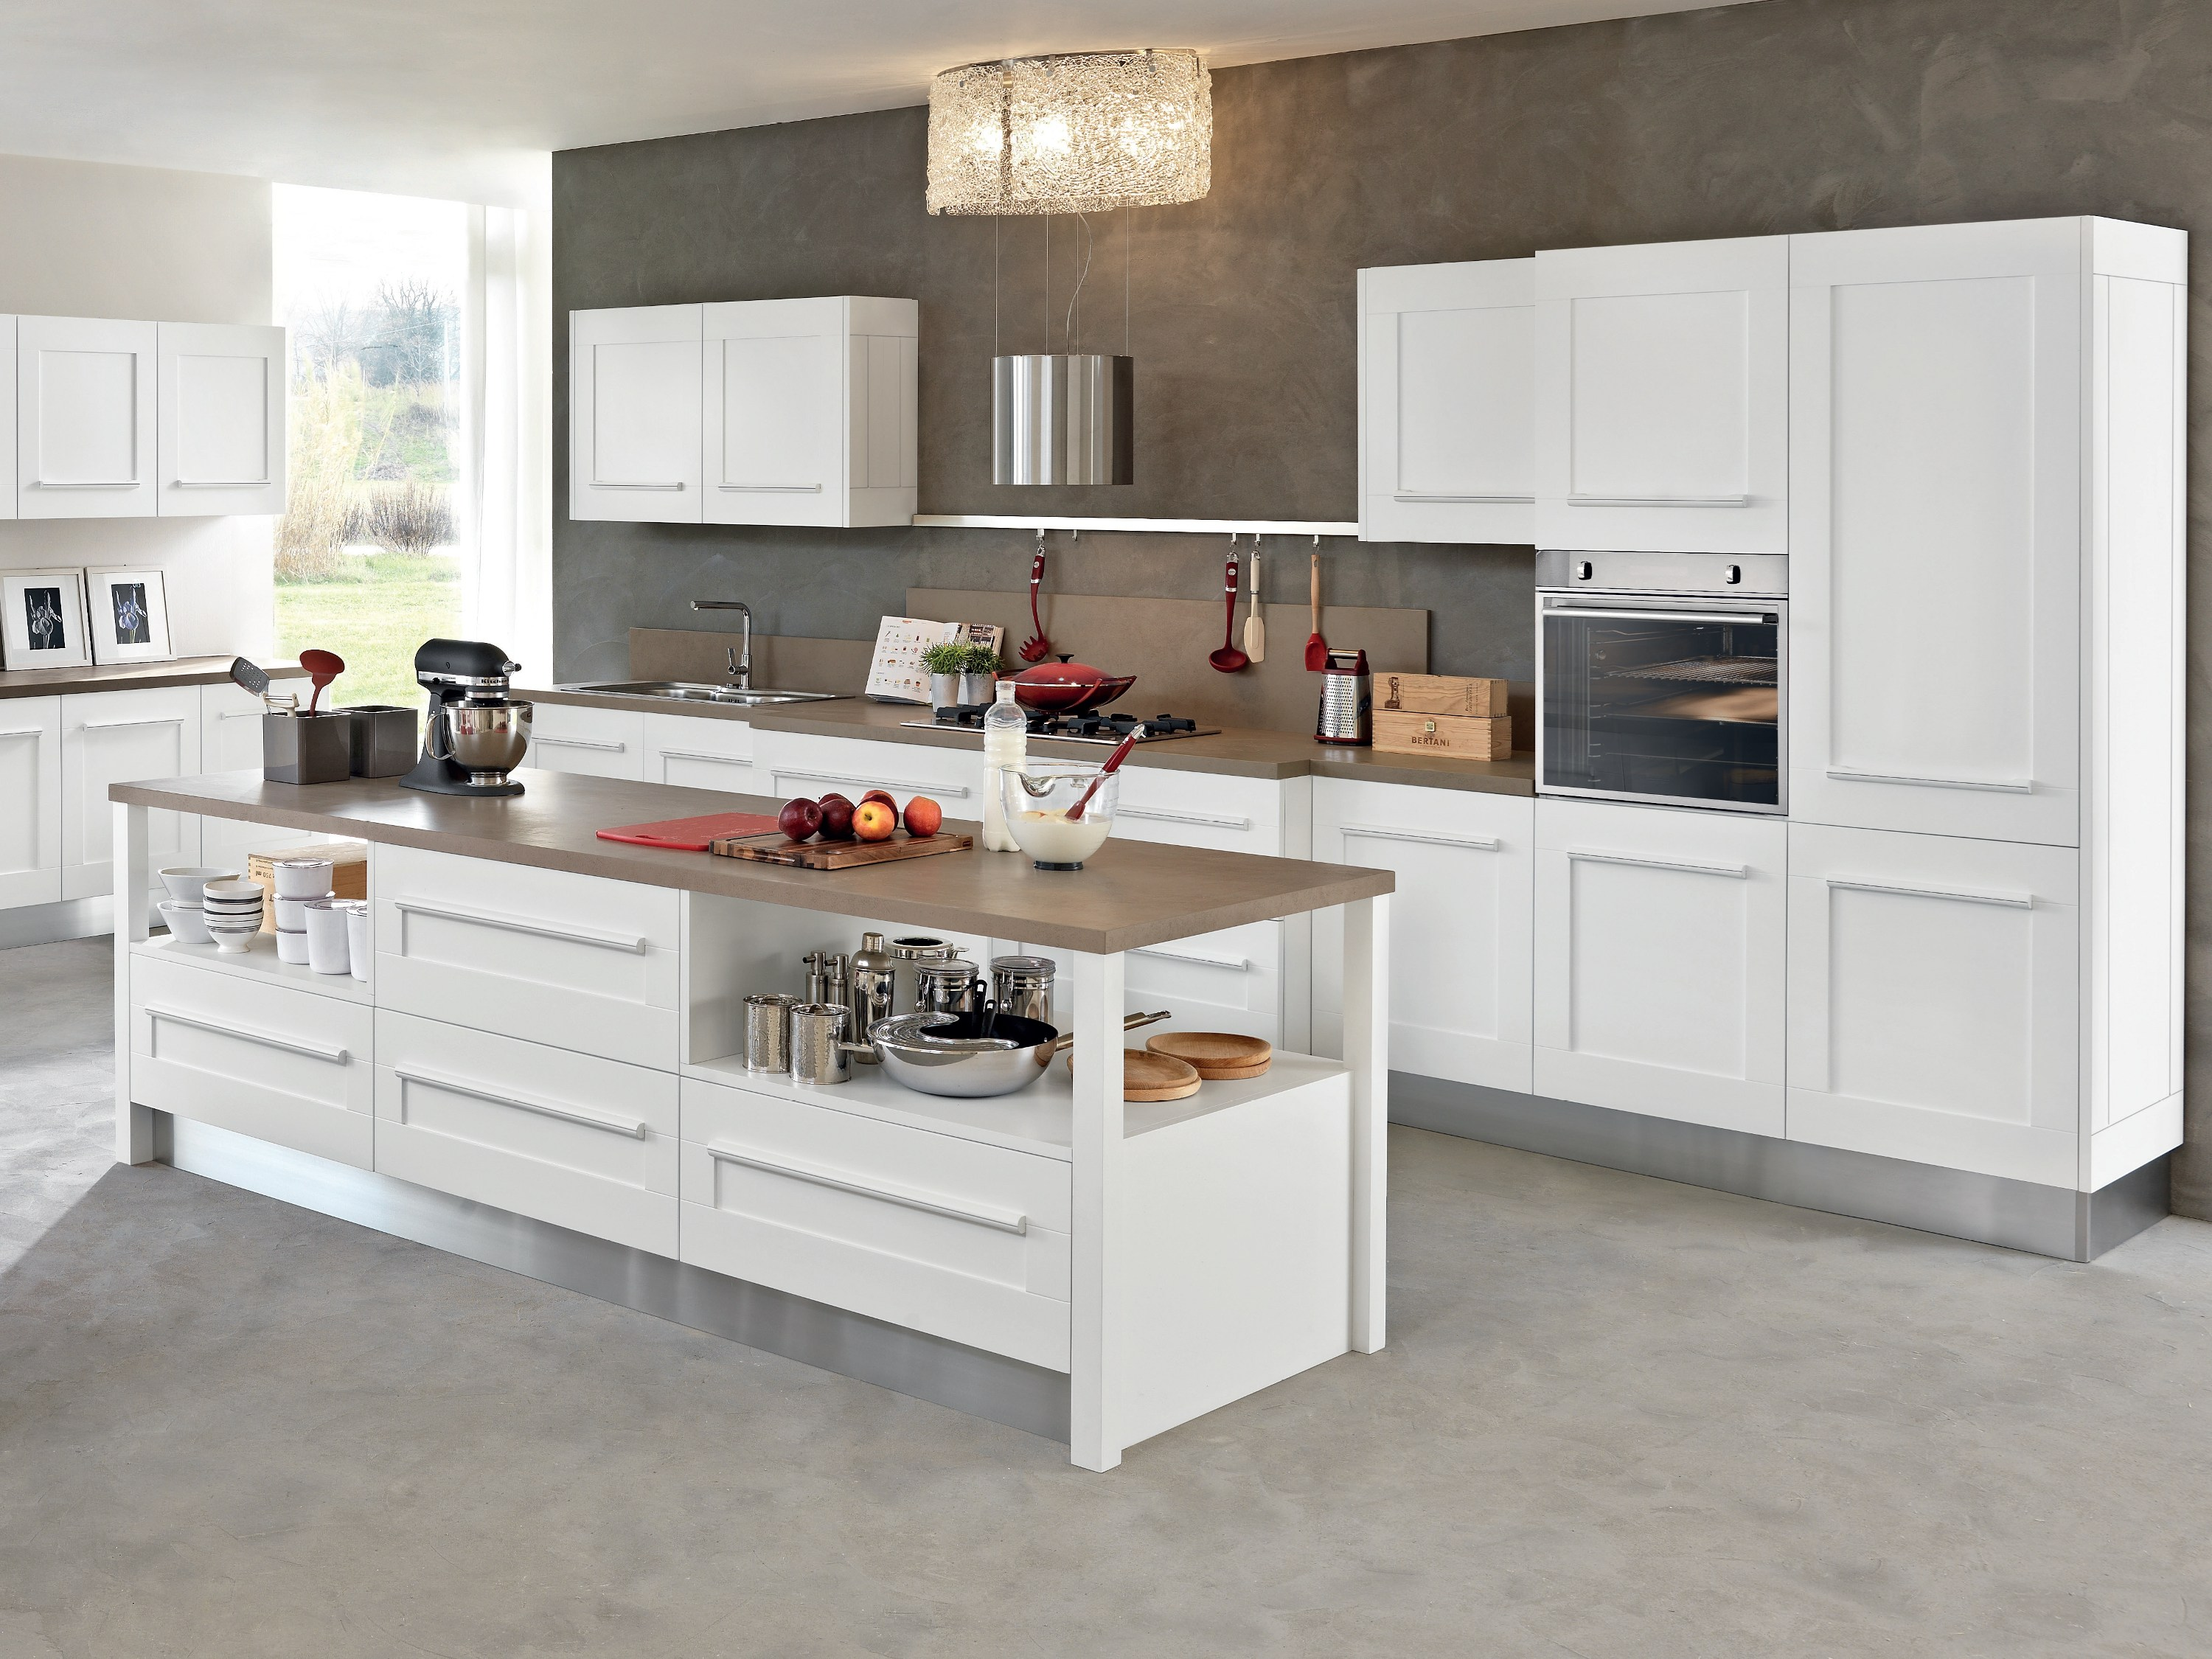 GALLERY Cucina con isola by Cucine Lube